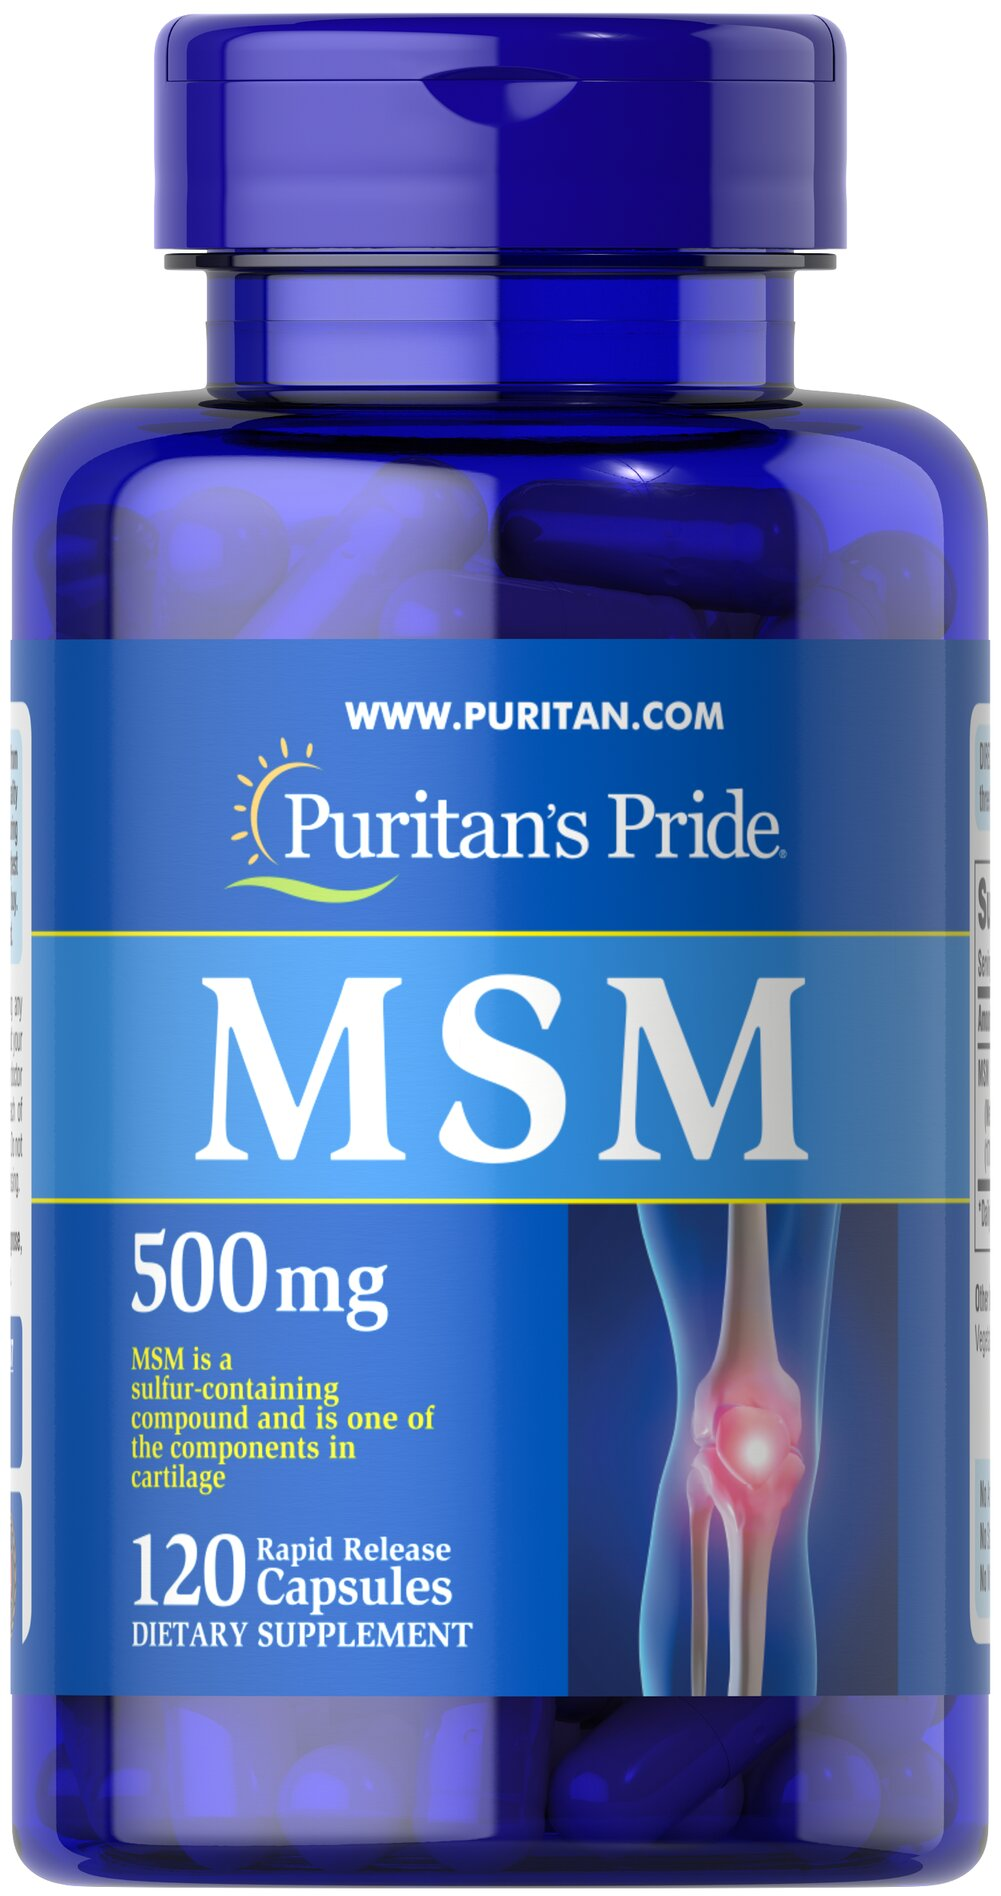 MSM 500 mg <p><strong>Methylsulfonylmethane (MSM)</strong> is a natural source of sulfur, one of the major building blocks of glycosaminoglycans.** Glycosaminoglycans are key structural components in cartilage and play an important role in the maintenance of joint cartilage. ** </p> 120 Capsules 500 mg $7.19